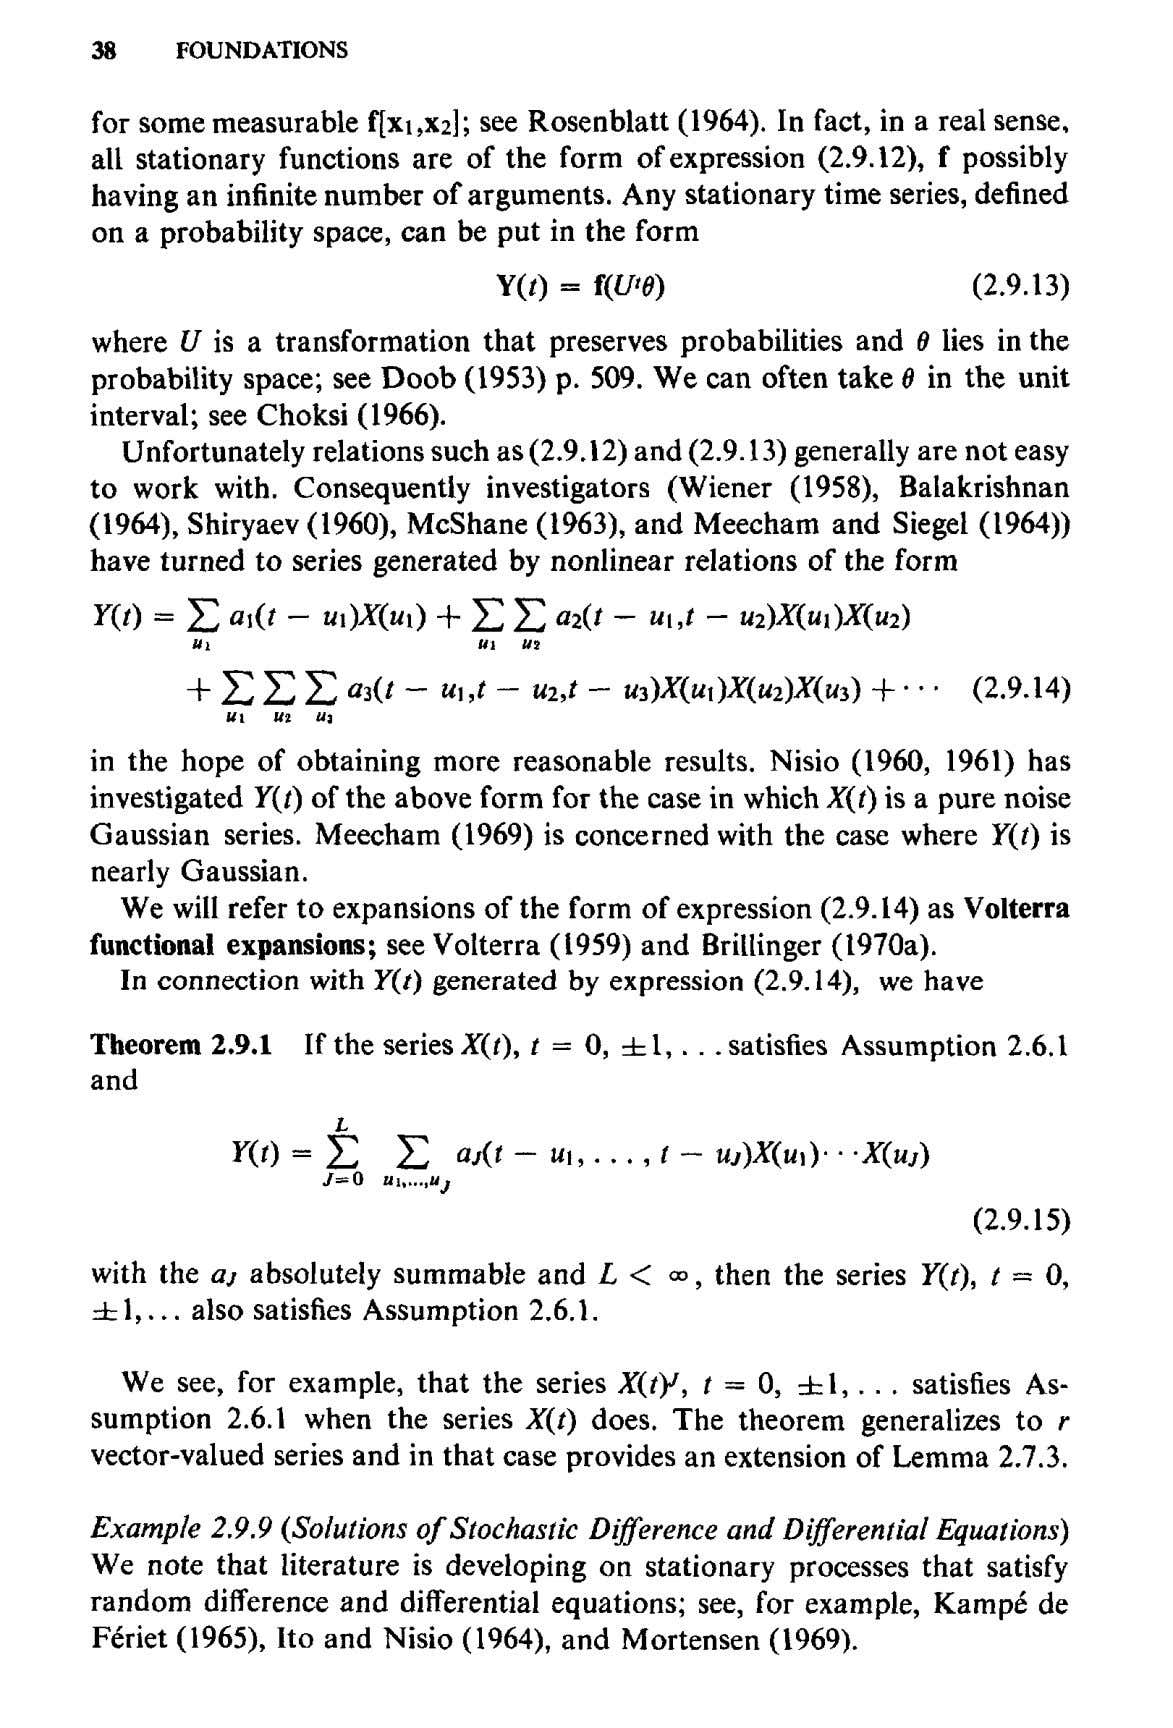 38 FOUNDATIONS for some measurable f[xi,X2]; see Rosenblatt (1964). In fact, in a real sense,